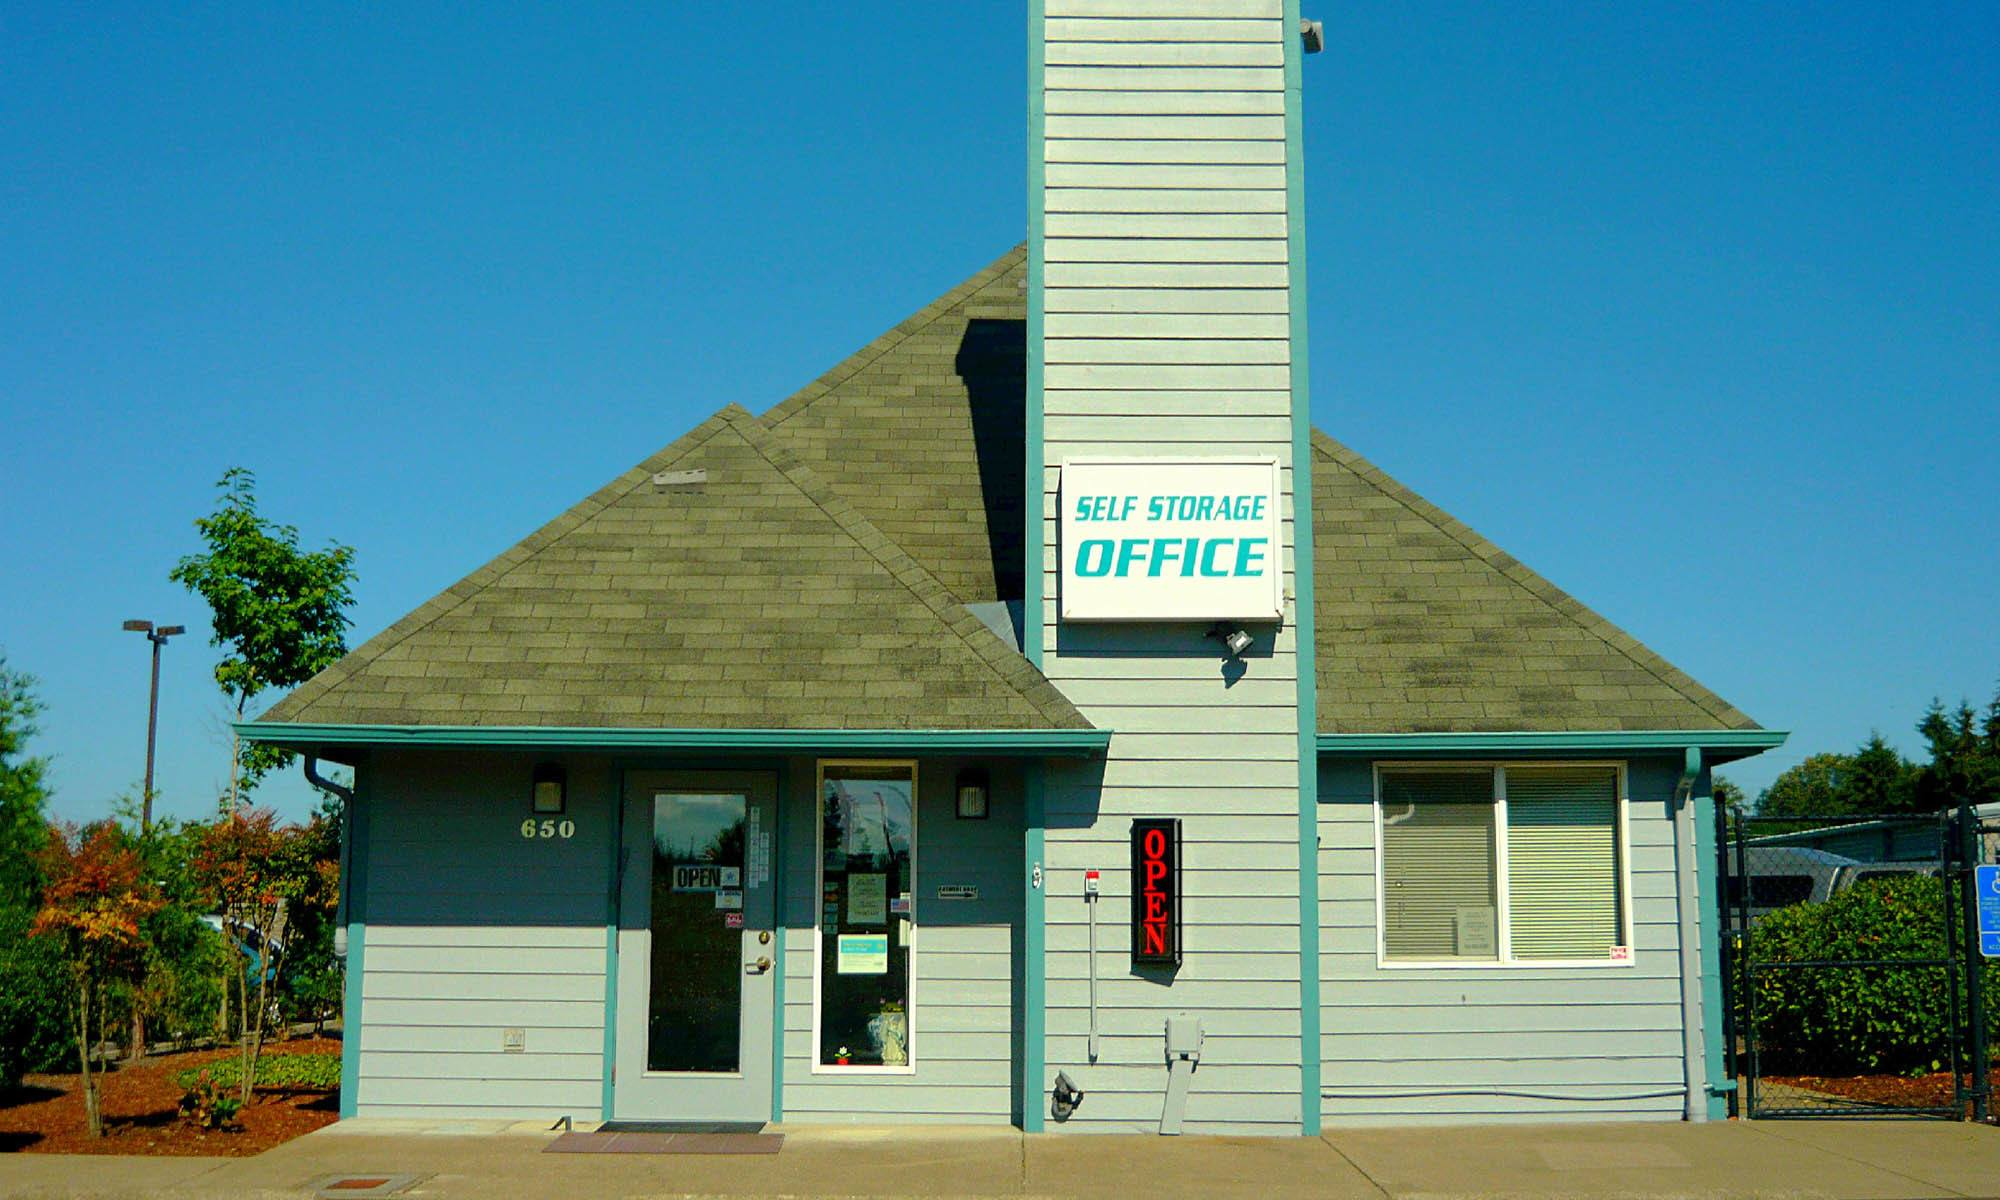 Self storage for all of your needs in Albany, OR